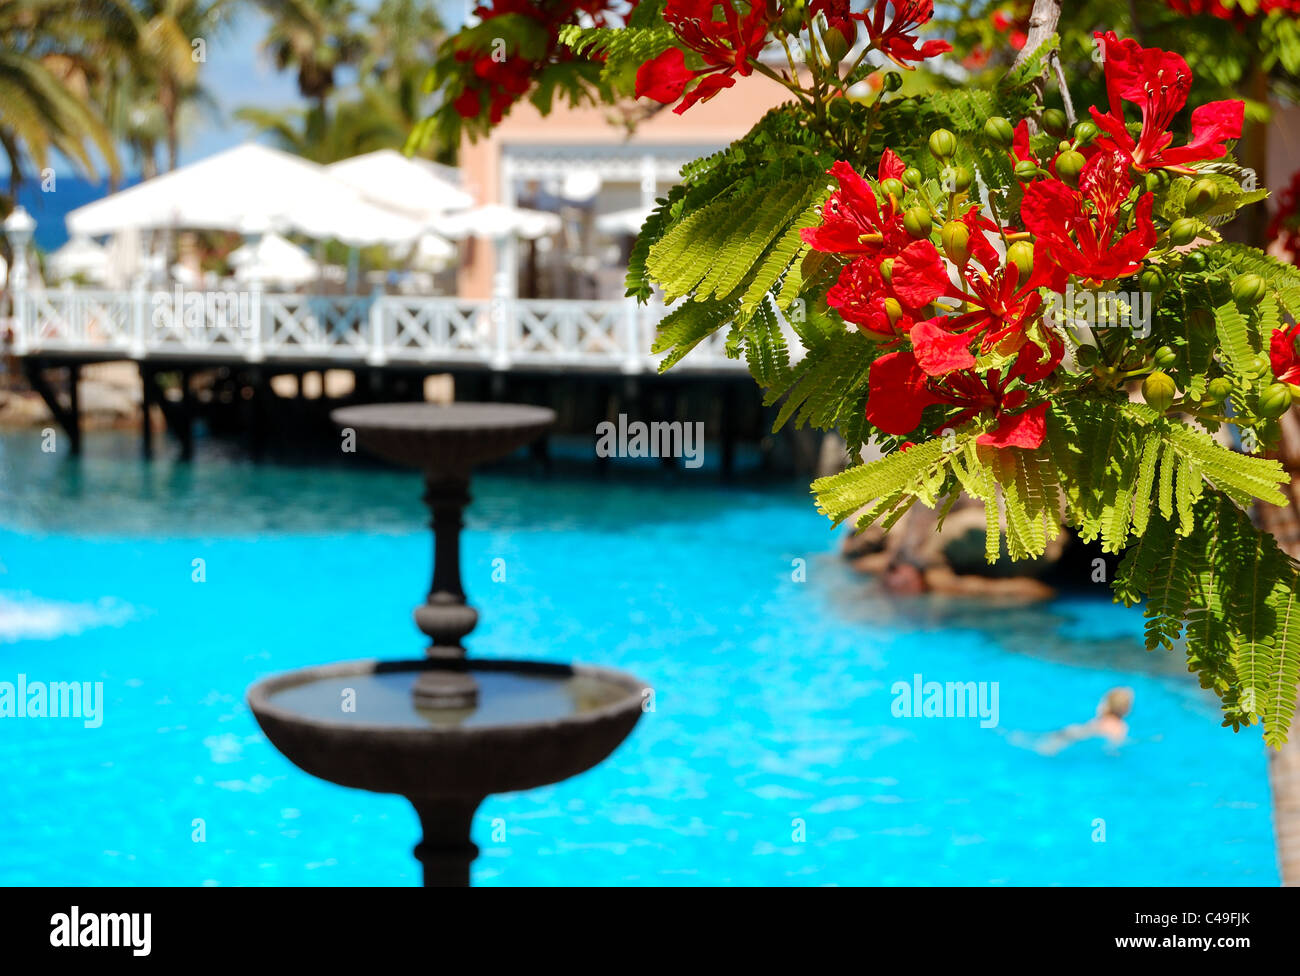 Flowers In Focus At Swimming Pool Open Air Restaurant And Luxury